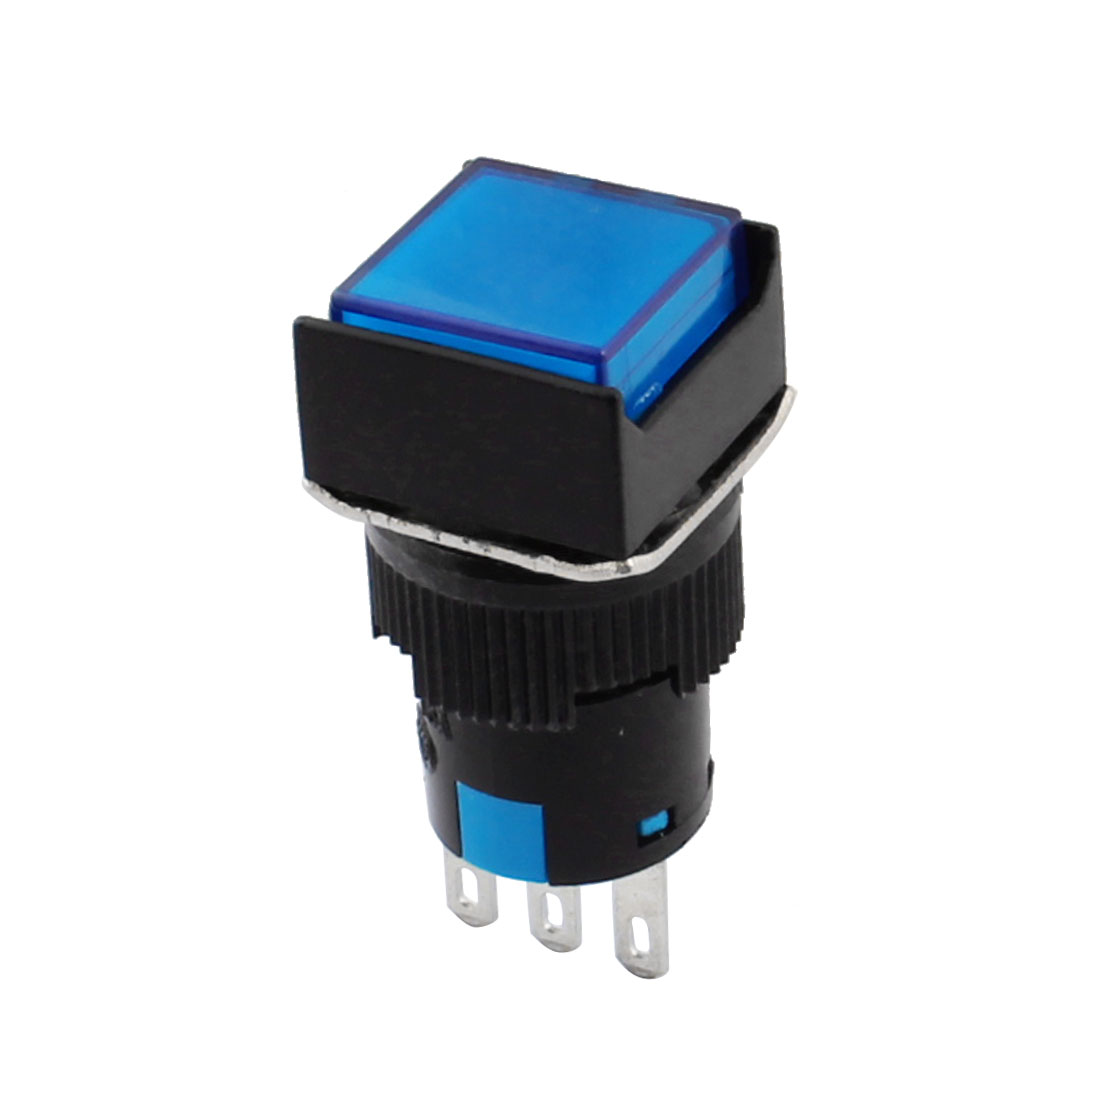 AC 250V 5A 3Pins 16mm Thread Panel Mounted SPDT Momemtary Blue Button Square Pushbutton Switch w Crimp Connectors